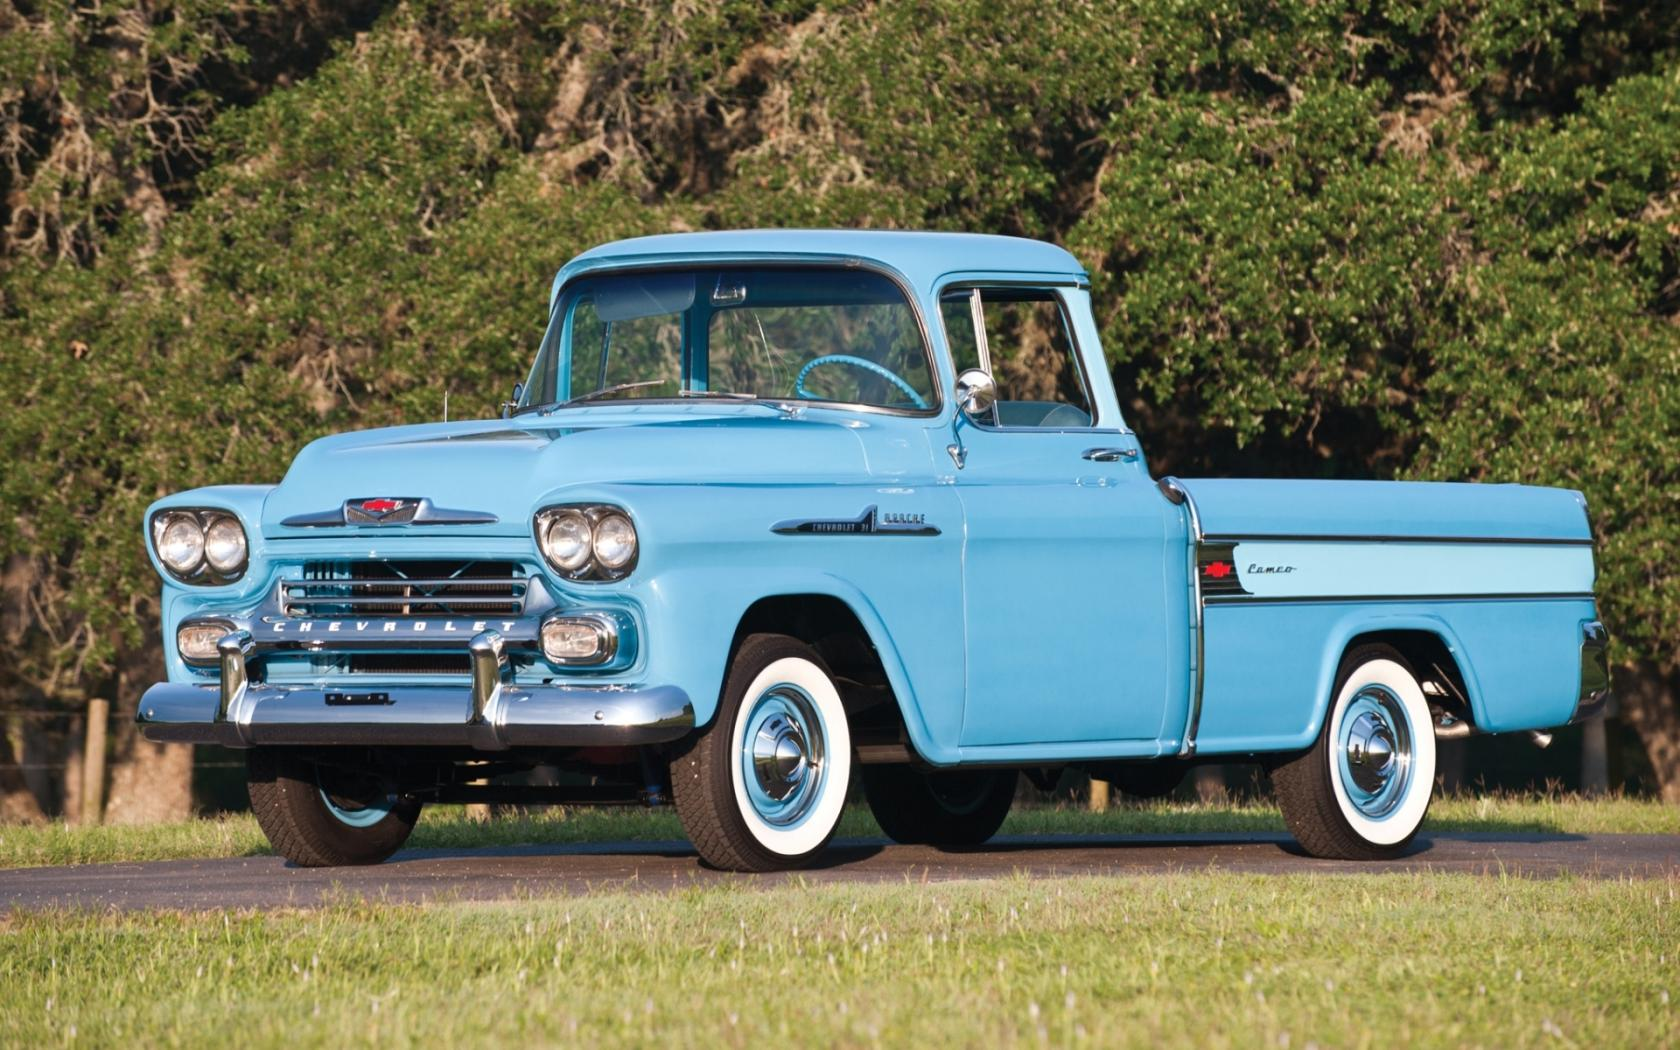 1958 Chevy Cameo Classic Pickup Truck Wallpaper   HD 1680x1050